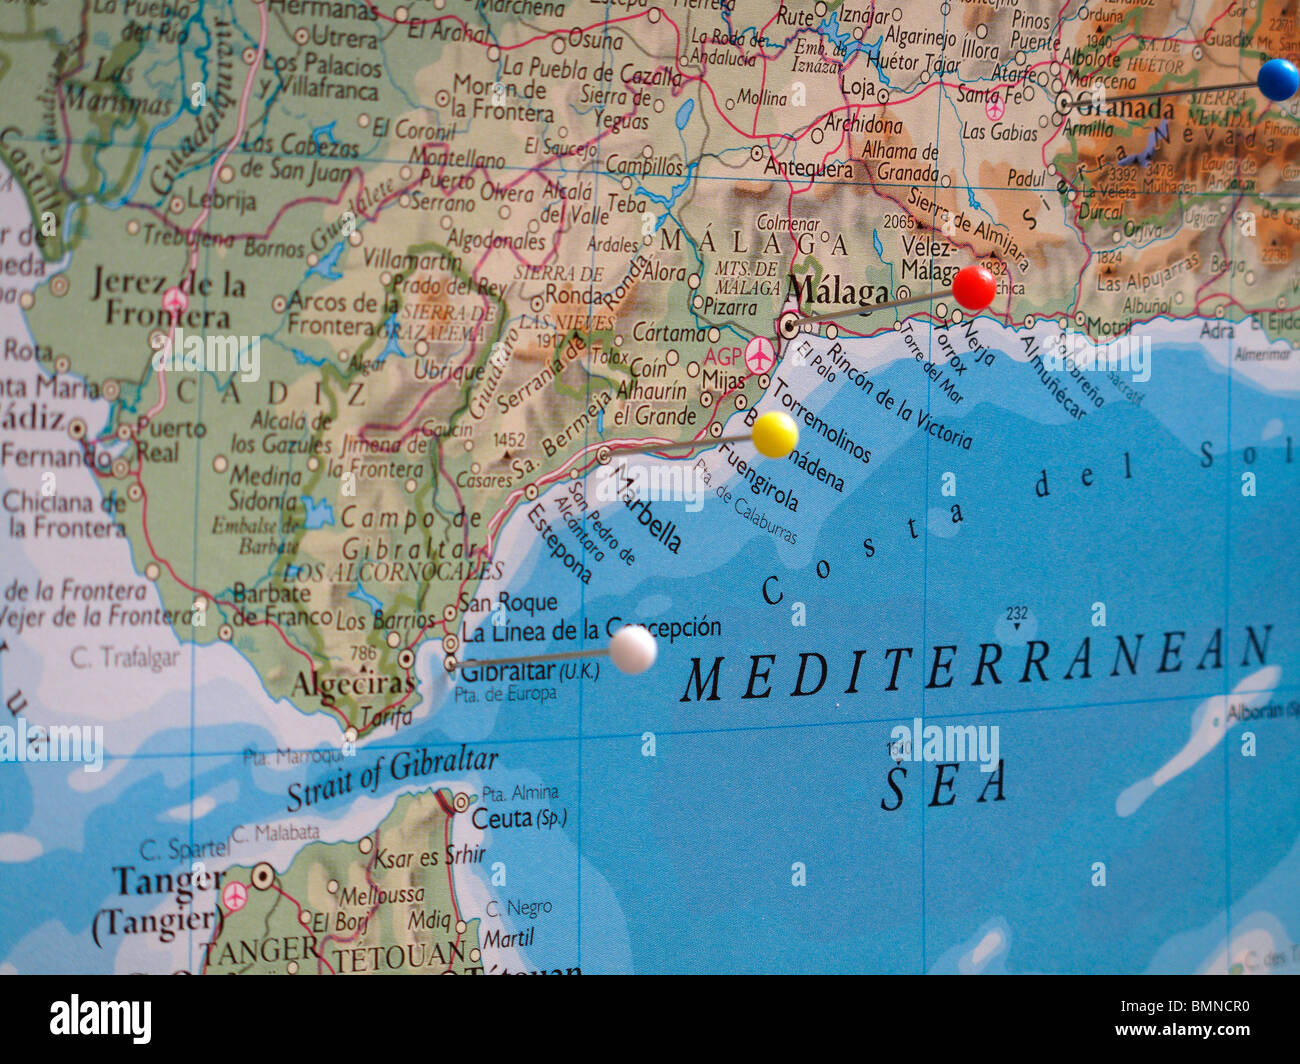 Detailed Map Of Southern Spain.Map Pins In Southern Spain Stock Photo 29974532 Alamy